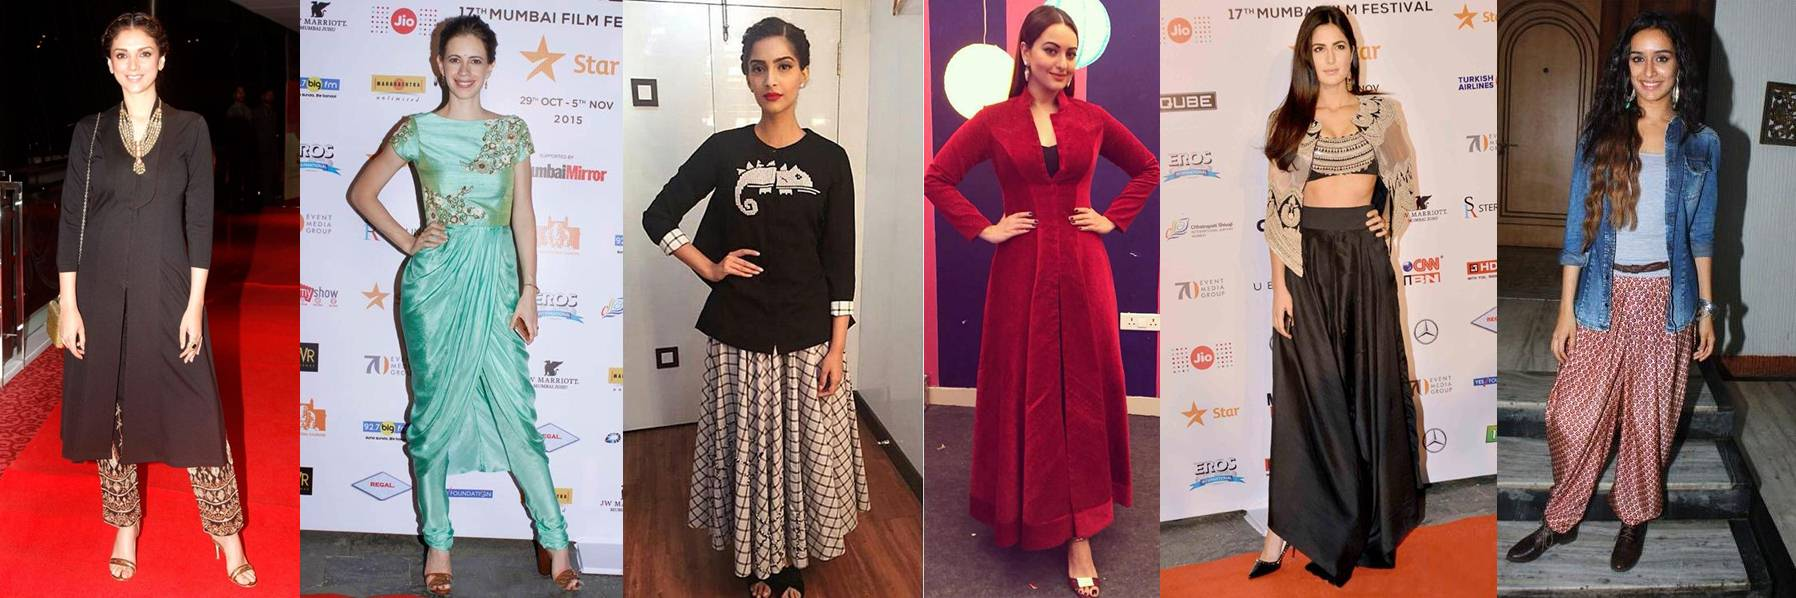 Best of Bollywood Fashion Trends in 2015 | With Pictures - Indo Western